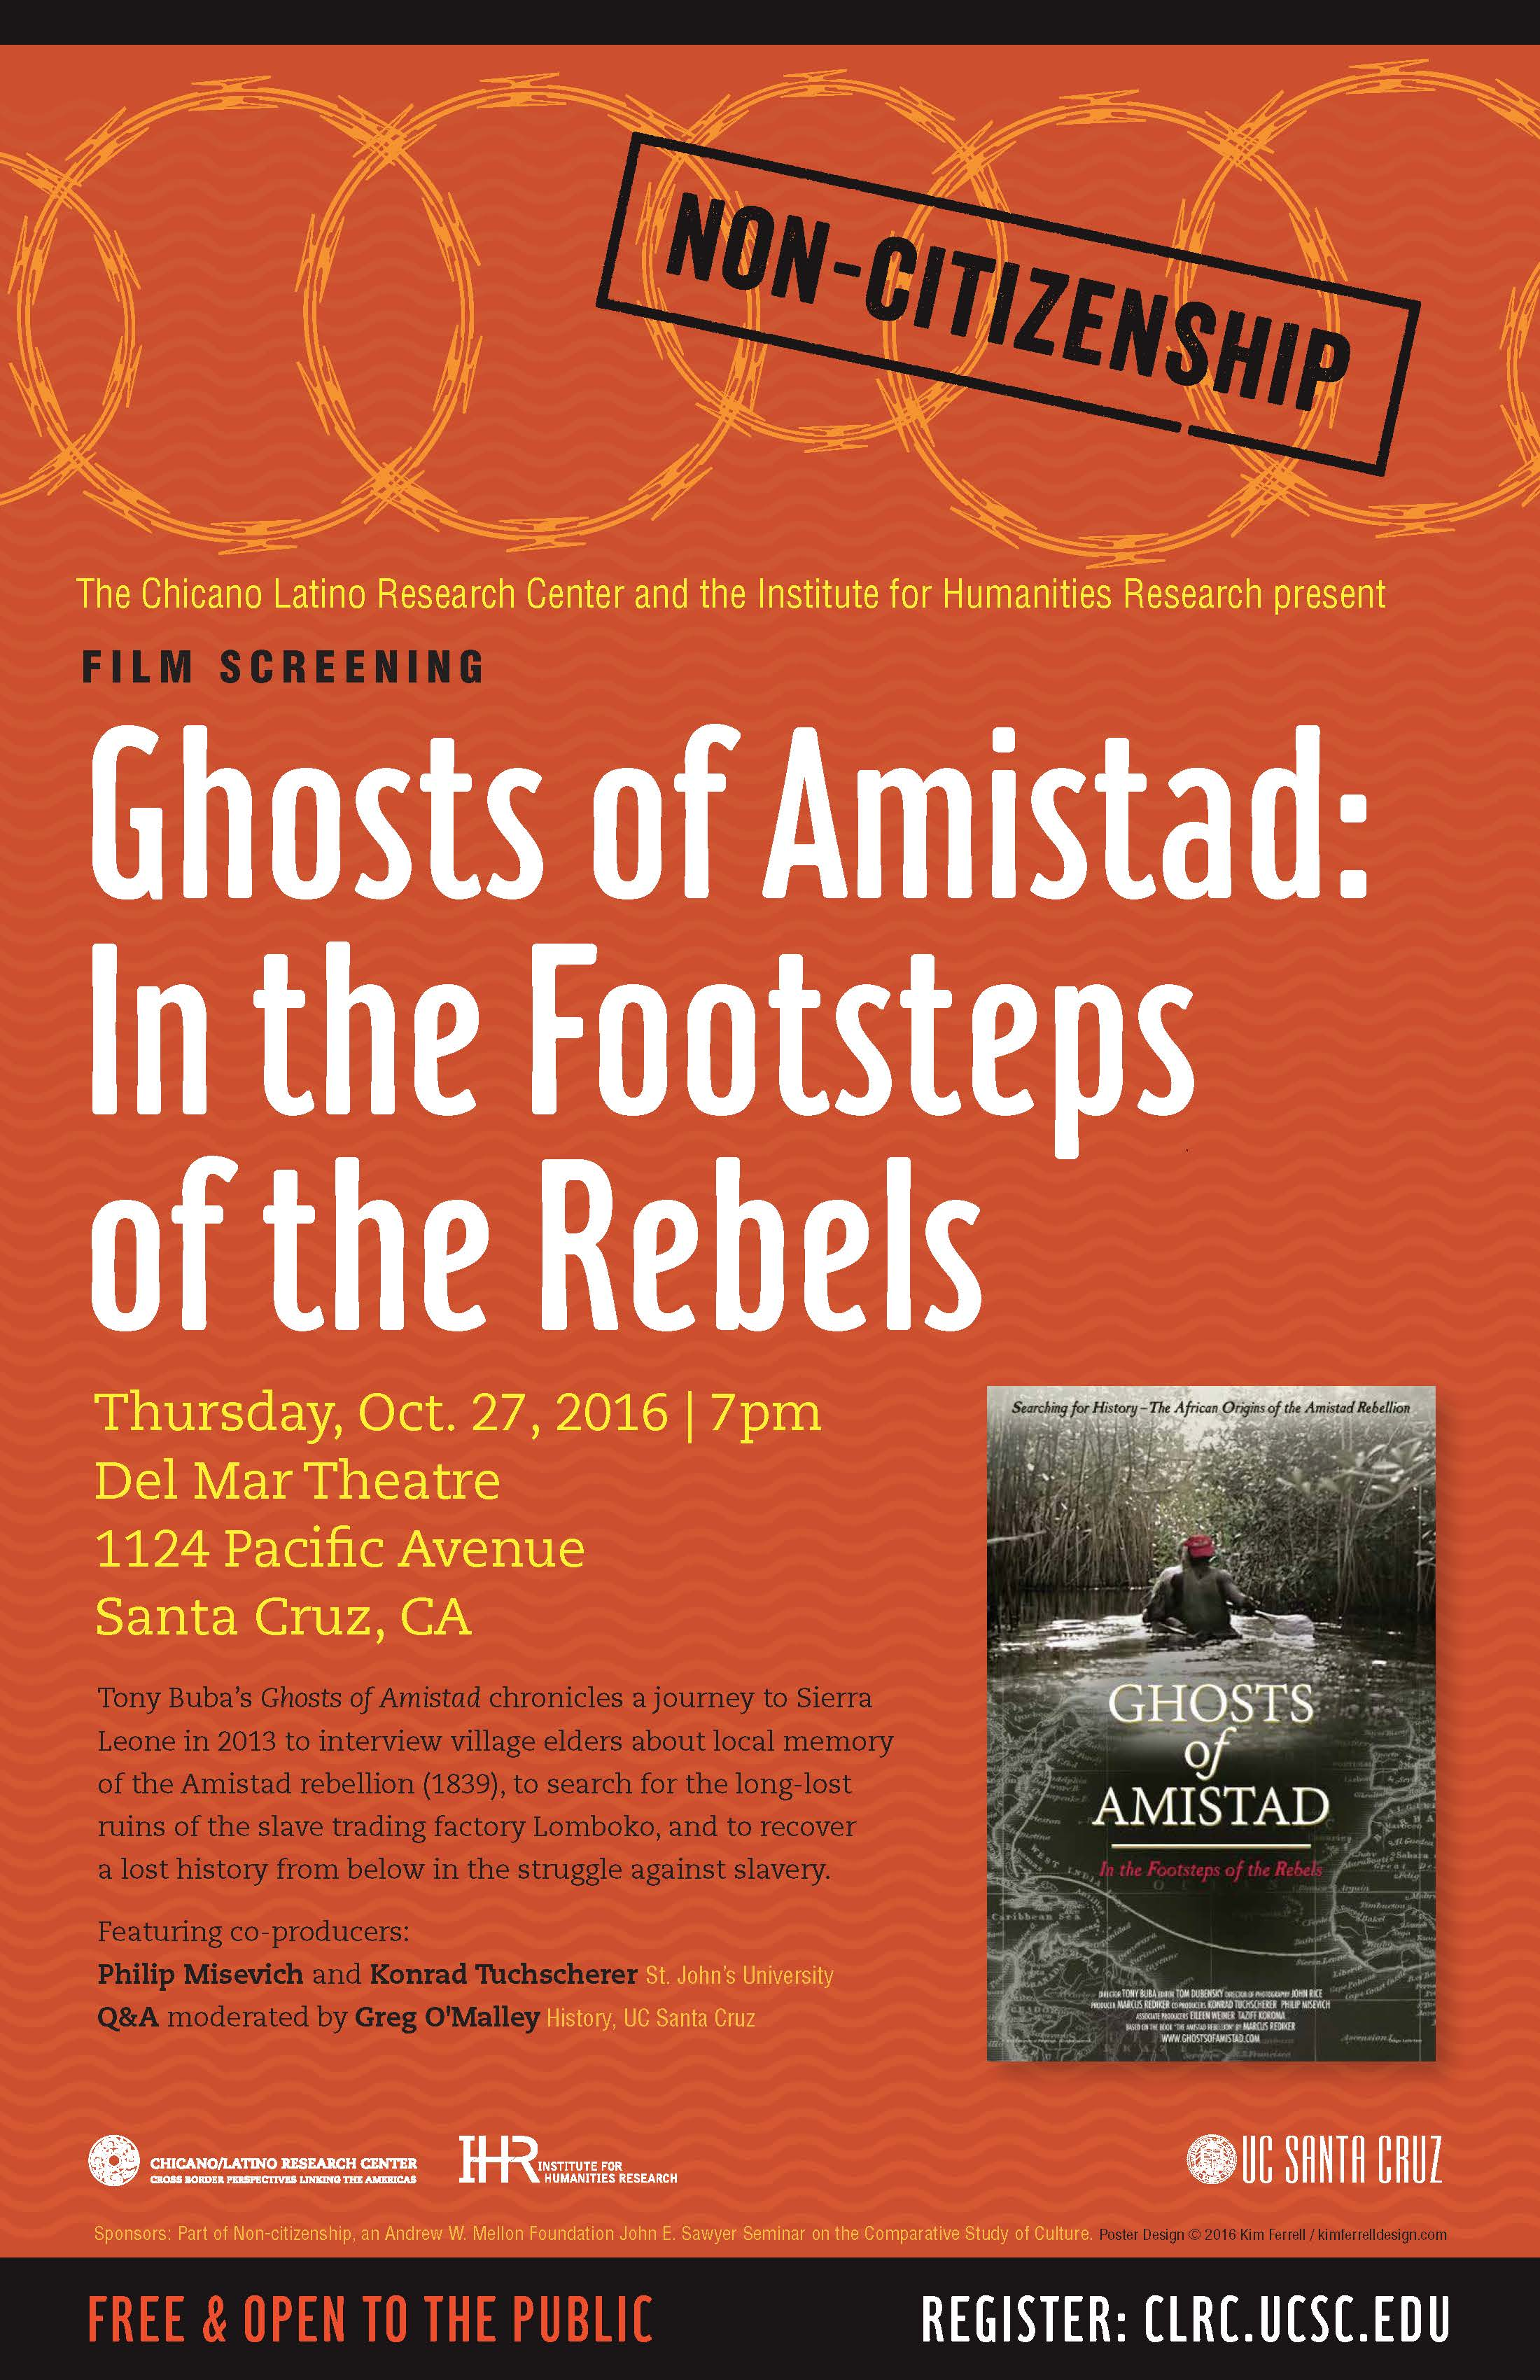 Ghosts of Amistad event poster